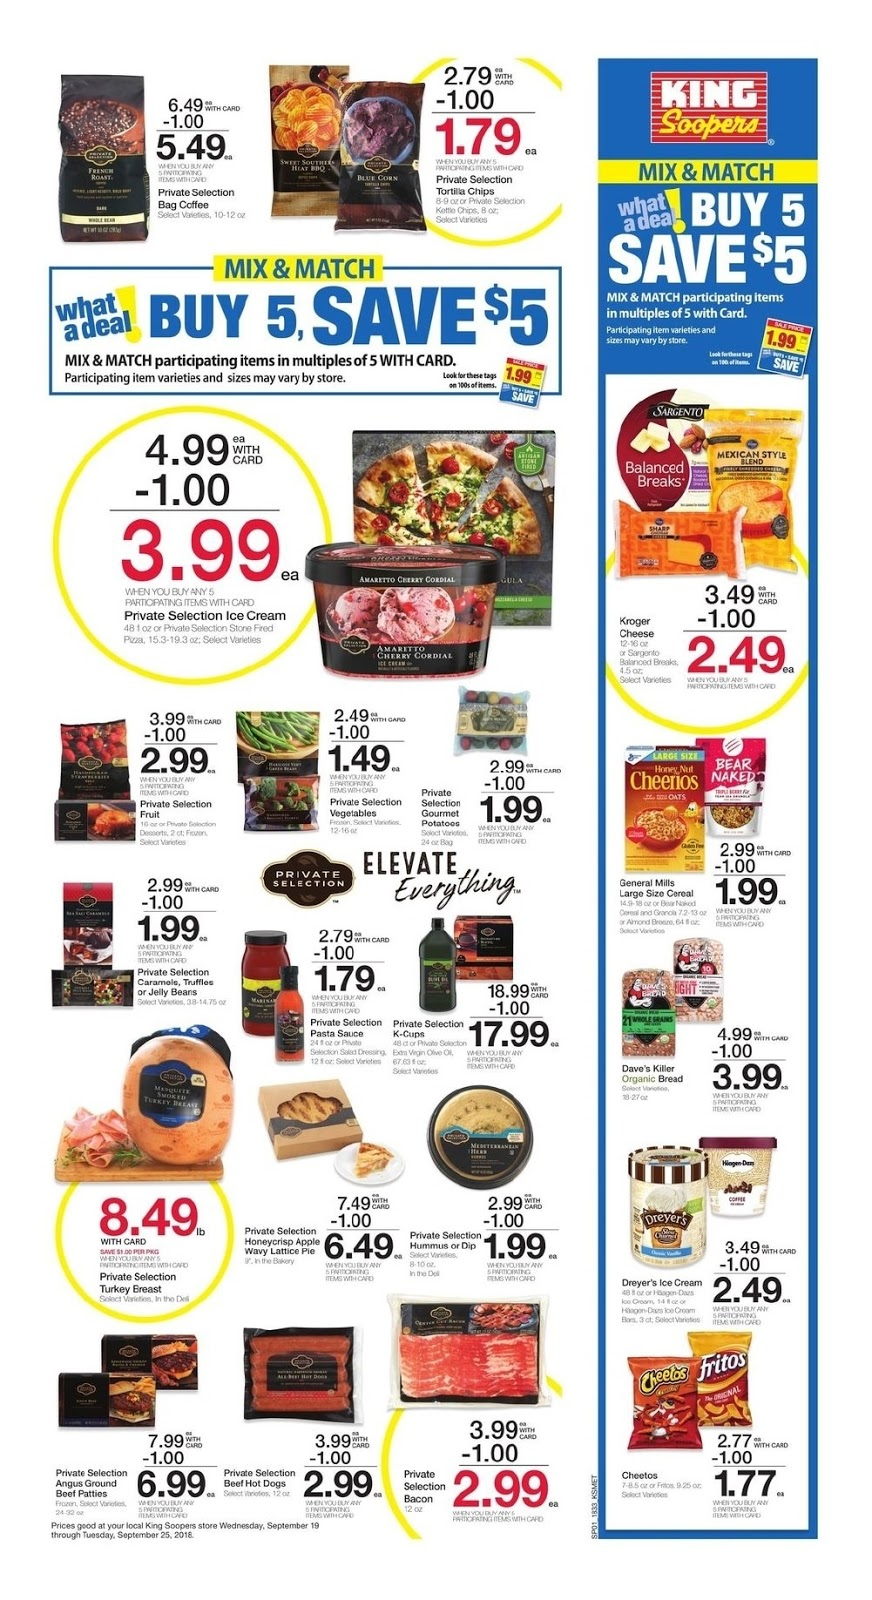 Browse the current King Soopers Weekly Ad September 19 - 25, 2018